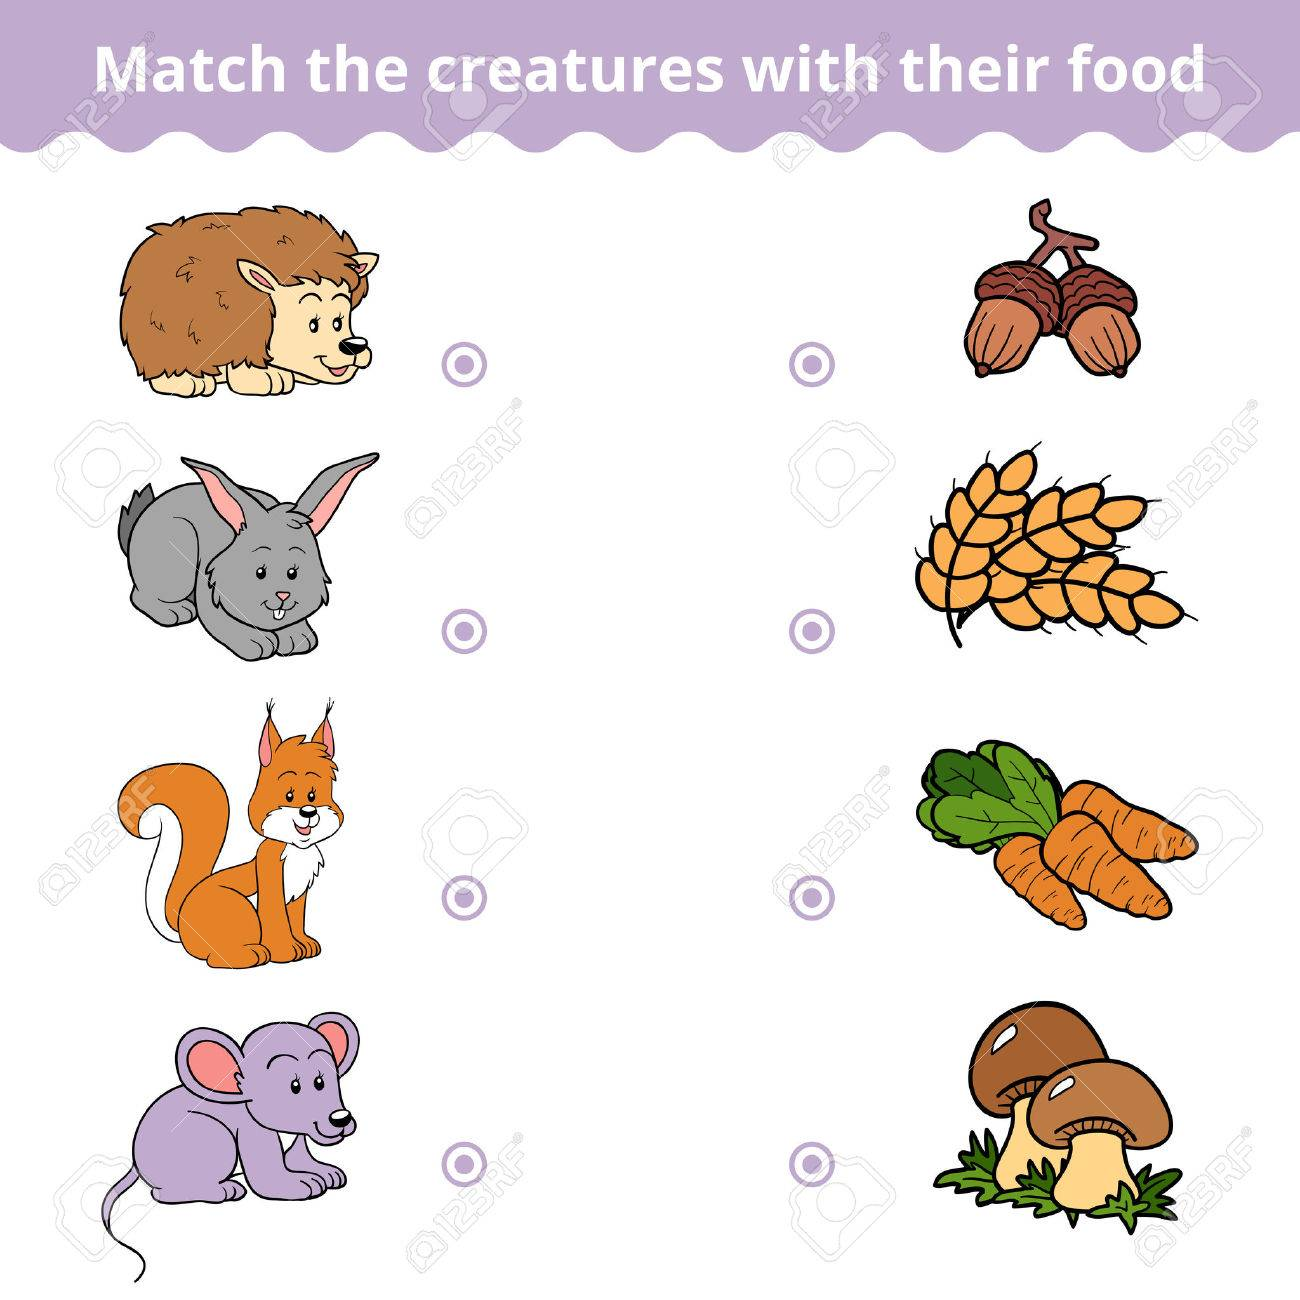 Matching game for children, vector education game (animals and favorite food) - 54591862